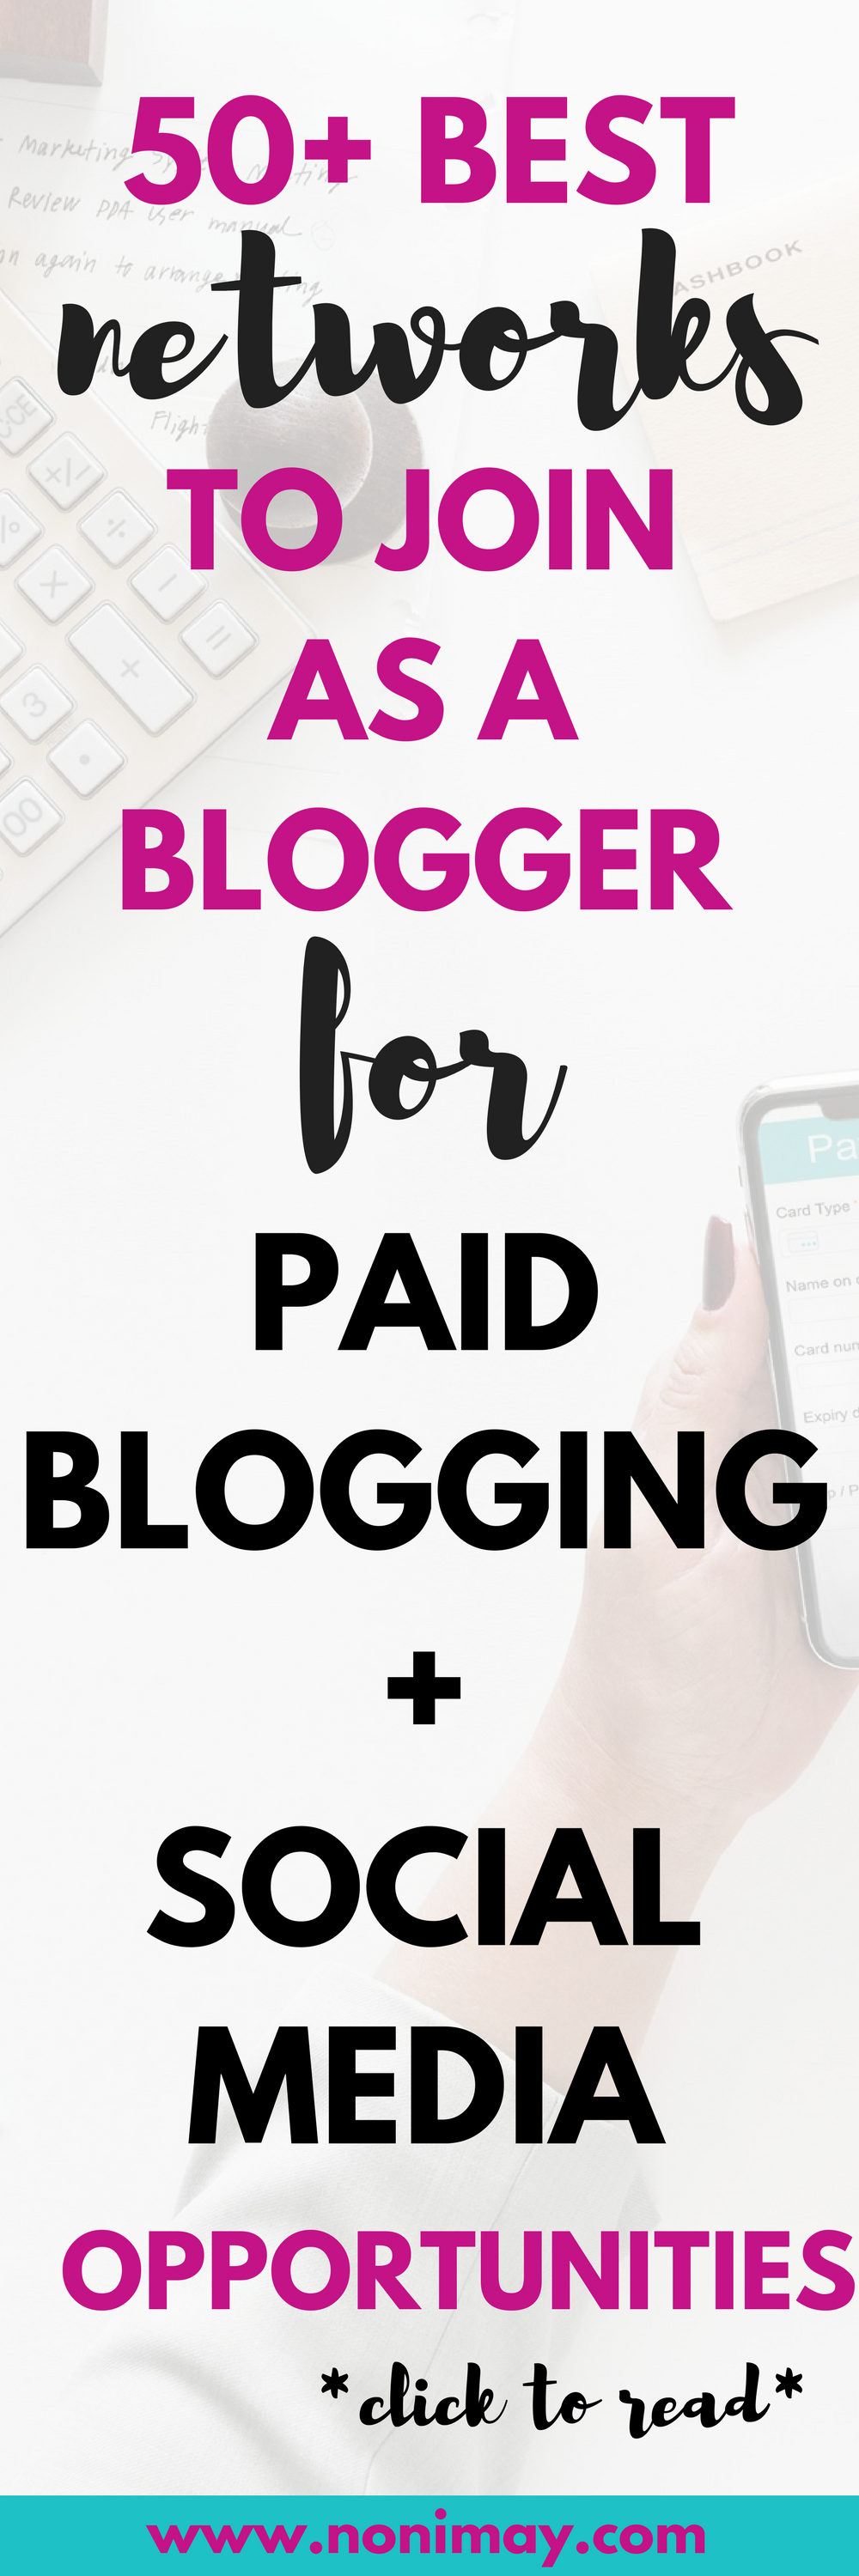 50+ best networks to join as a blogger for paid blogging and social media opportunities